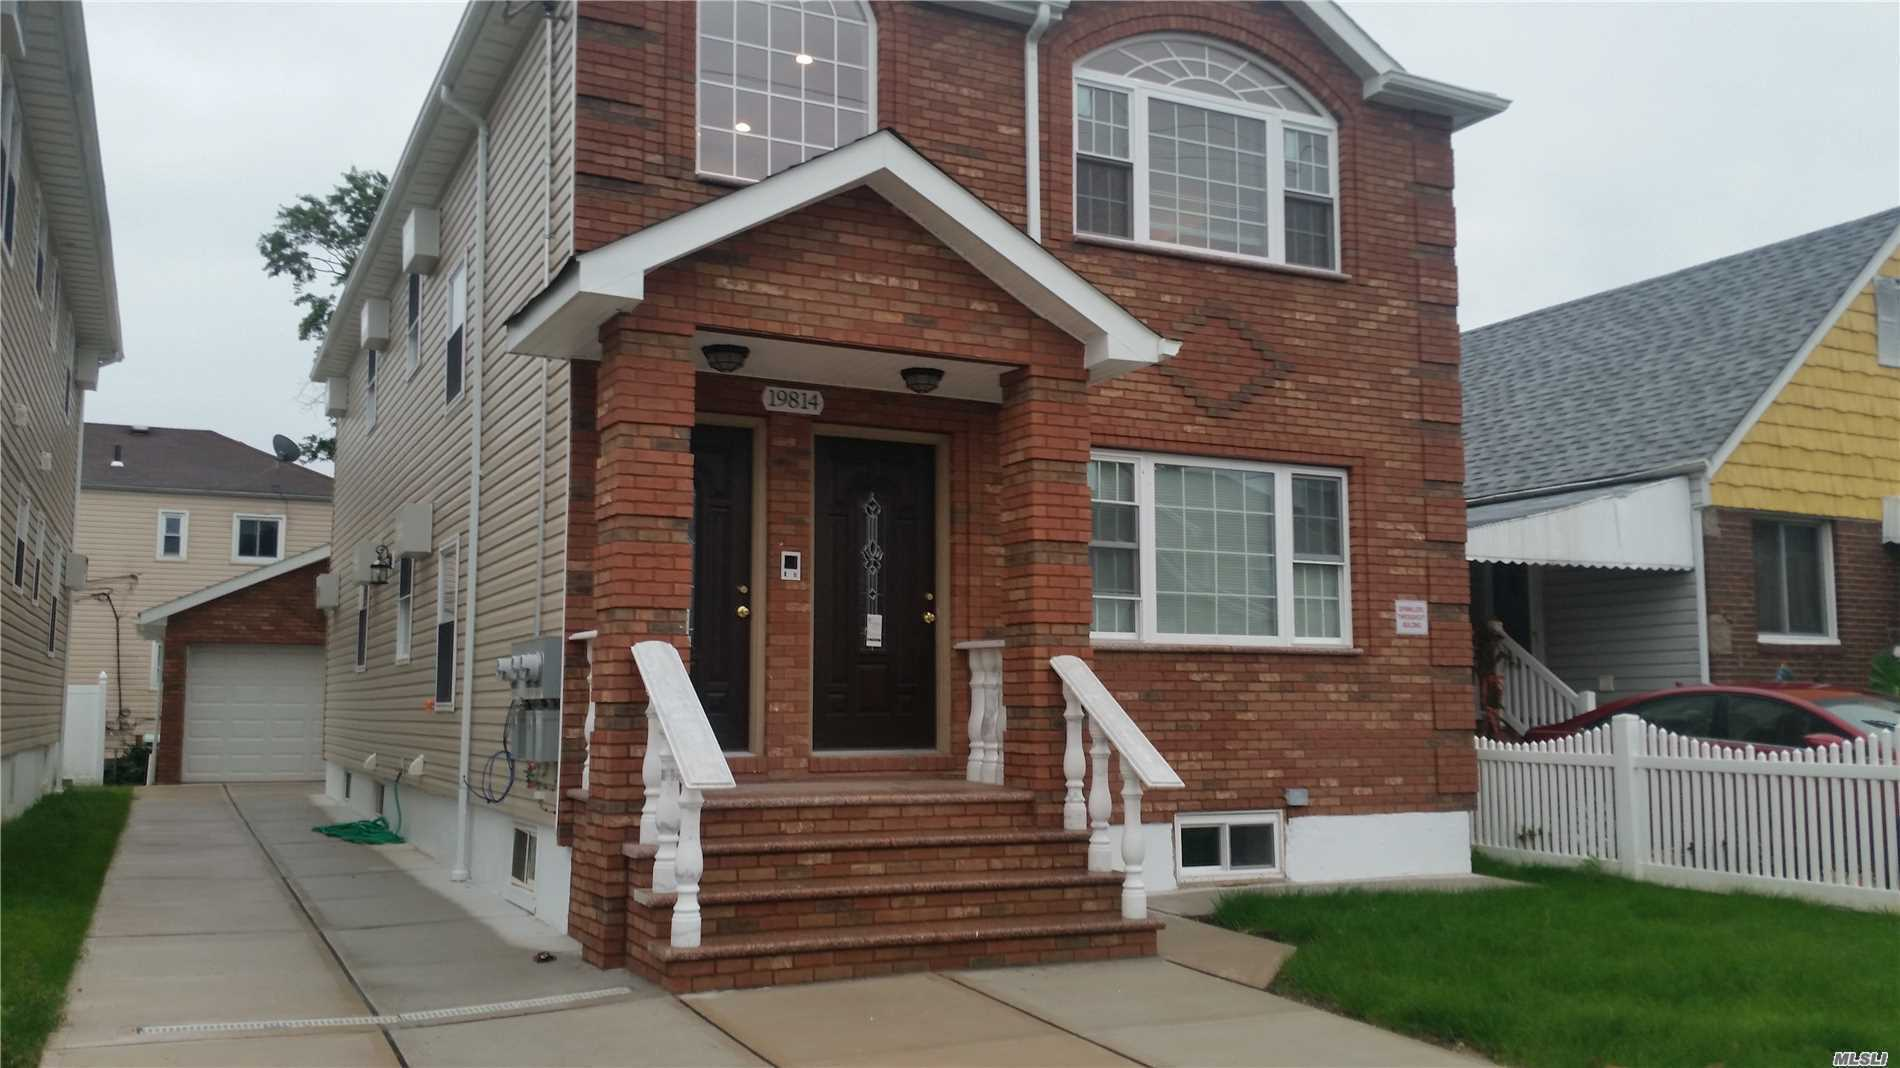 Brand New Construction Well Made Home Great Location Big Master With Full Bath & Walk In Closet Finished Basement With High Ceiling And Separate Entrance .